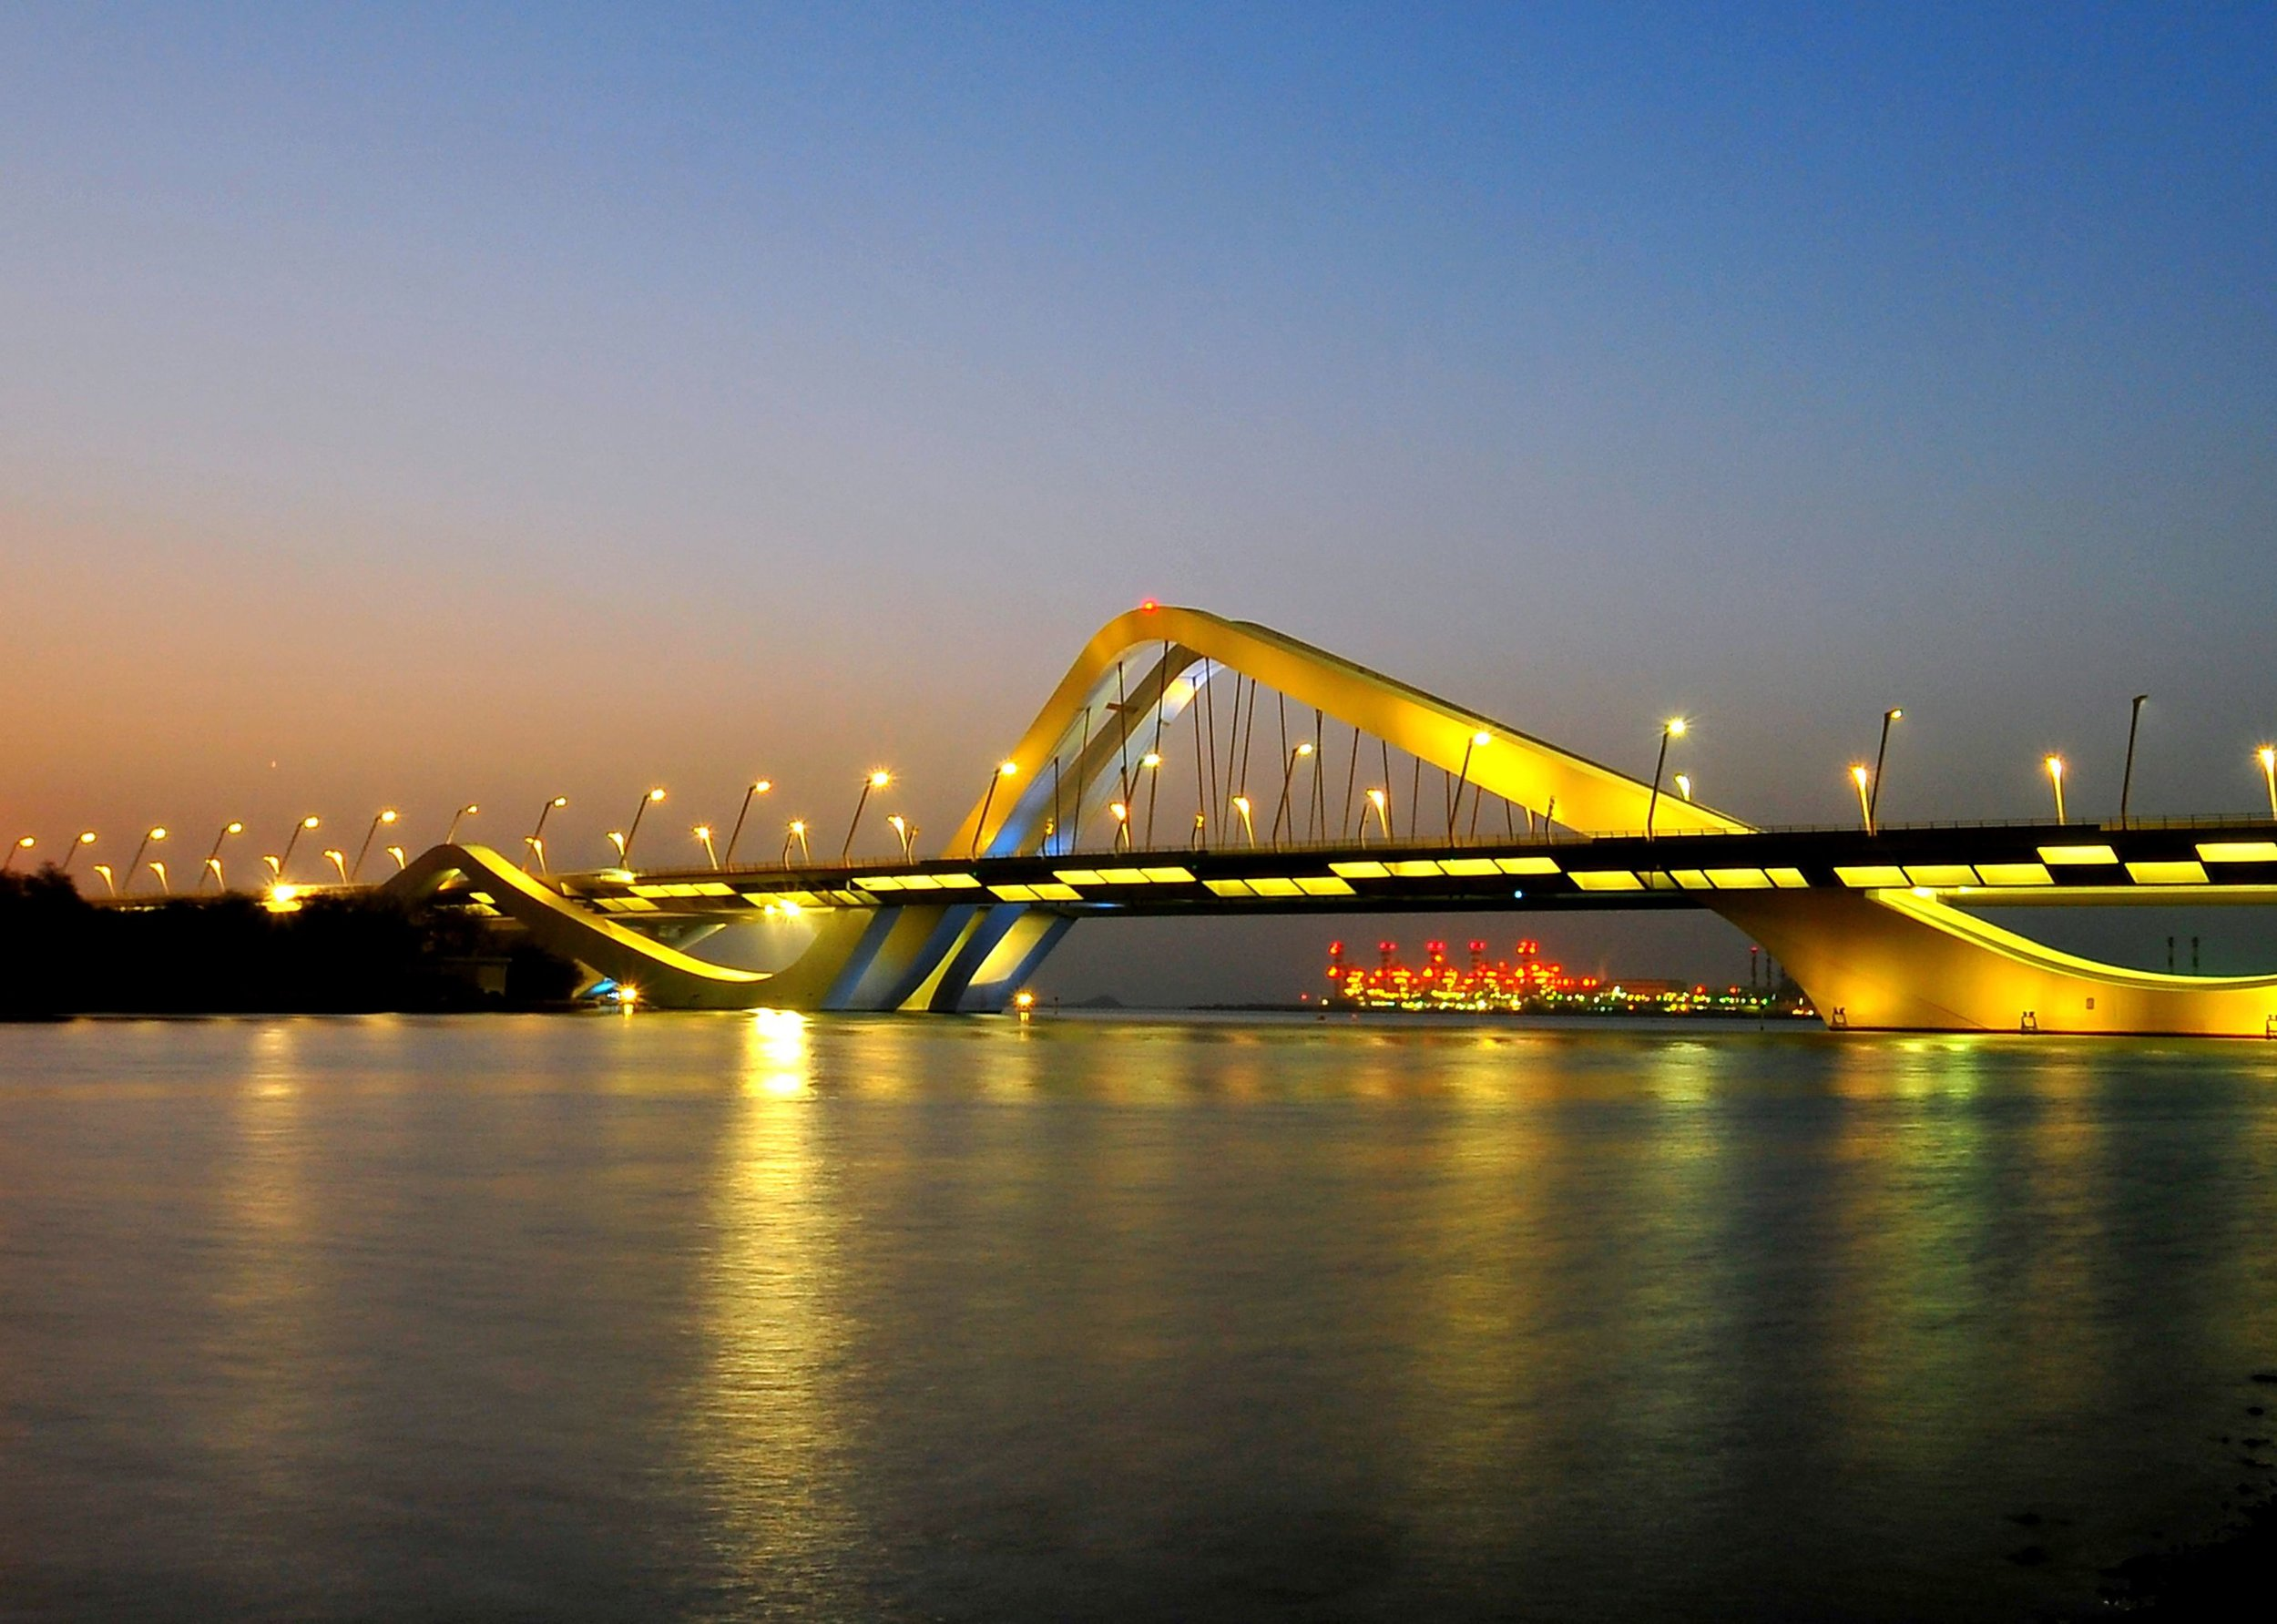 Sheikh_Zayed_Bridge_-_Abu_Dhabi,_UAE.jpg